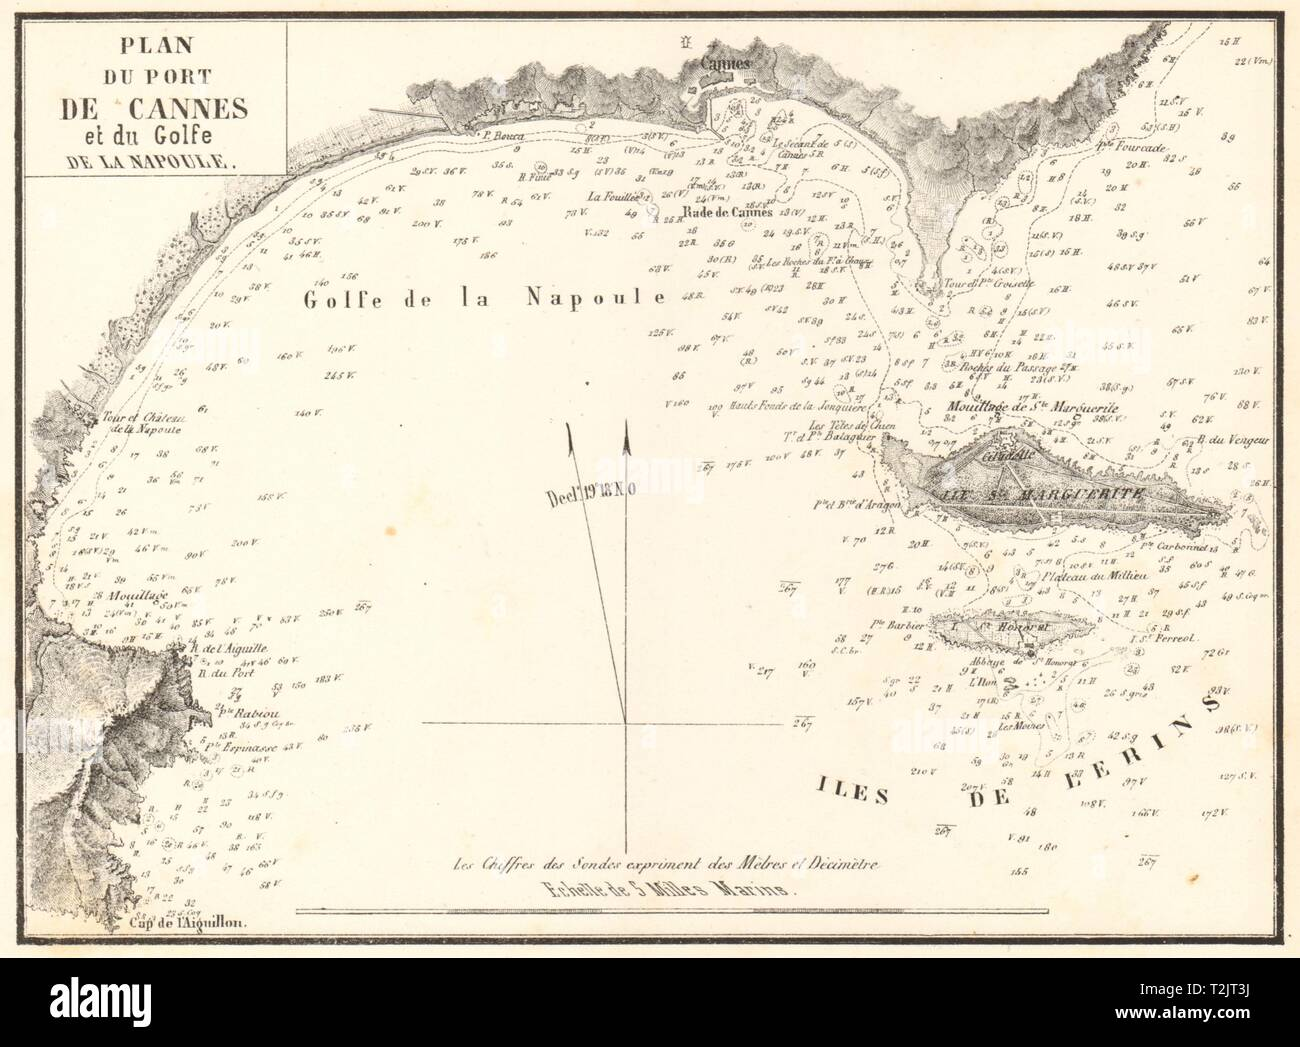 Port de Cannes & du Golfe de la Napoule. Alpes-Maritimes. GAUTTIER 1851 map - Stock Image